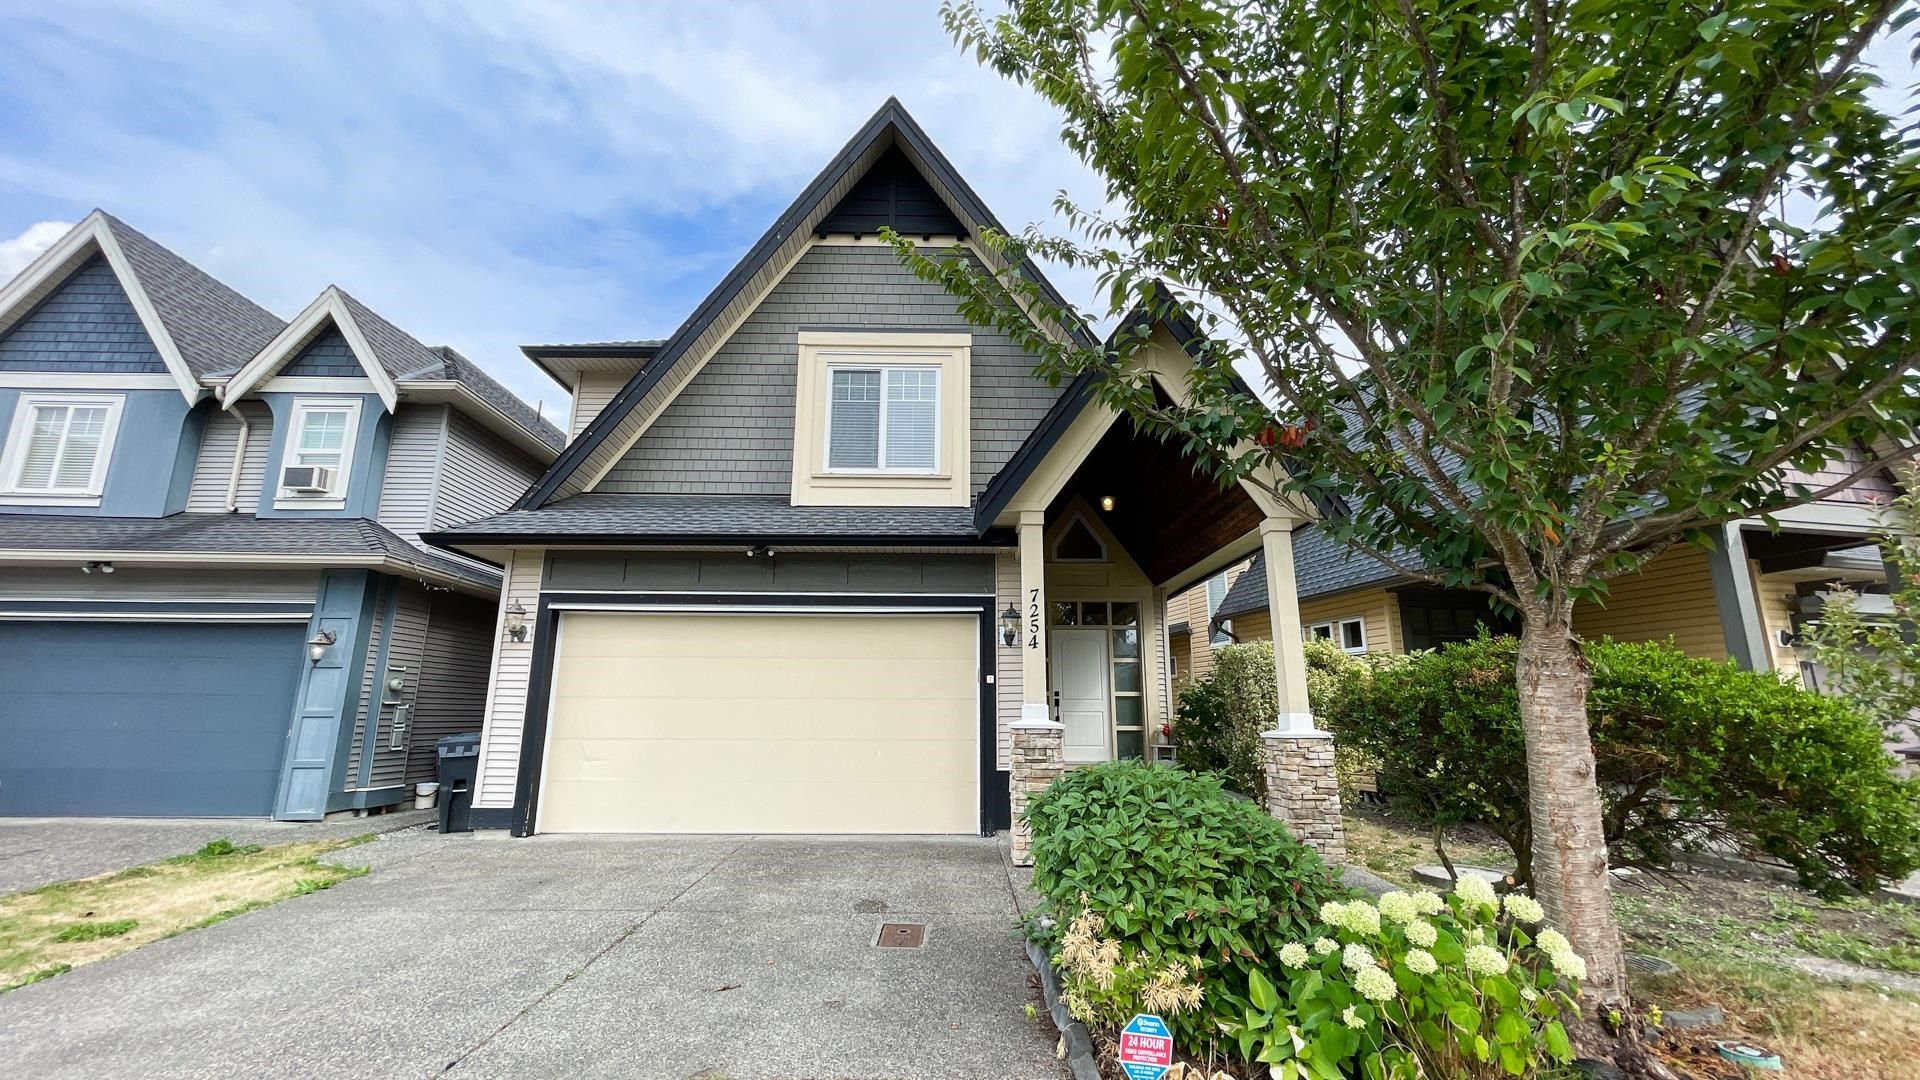 Main Photo: 7254 199A Street in Langley: Willoughby Heights House for sale : MLS®# R2623172